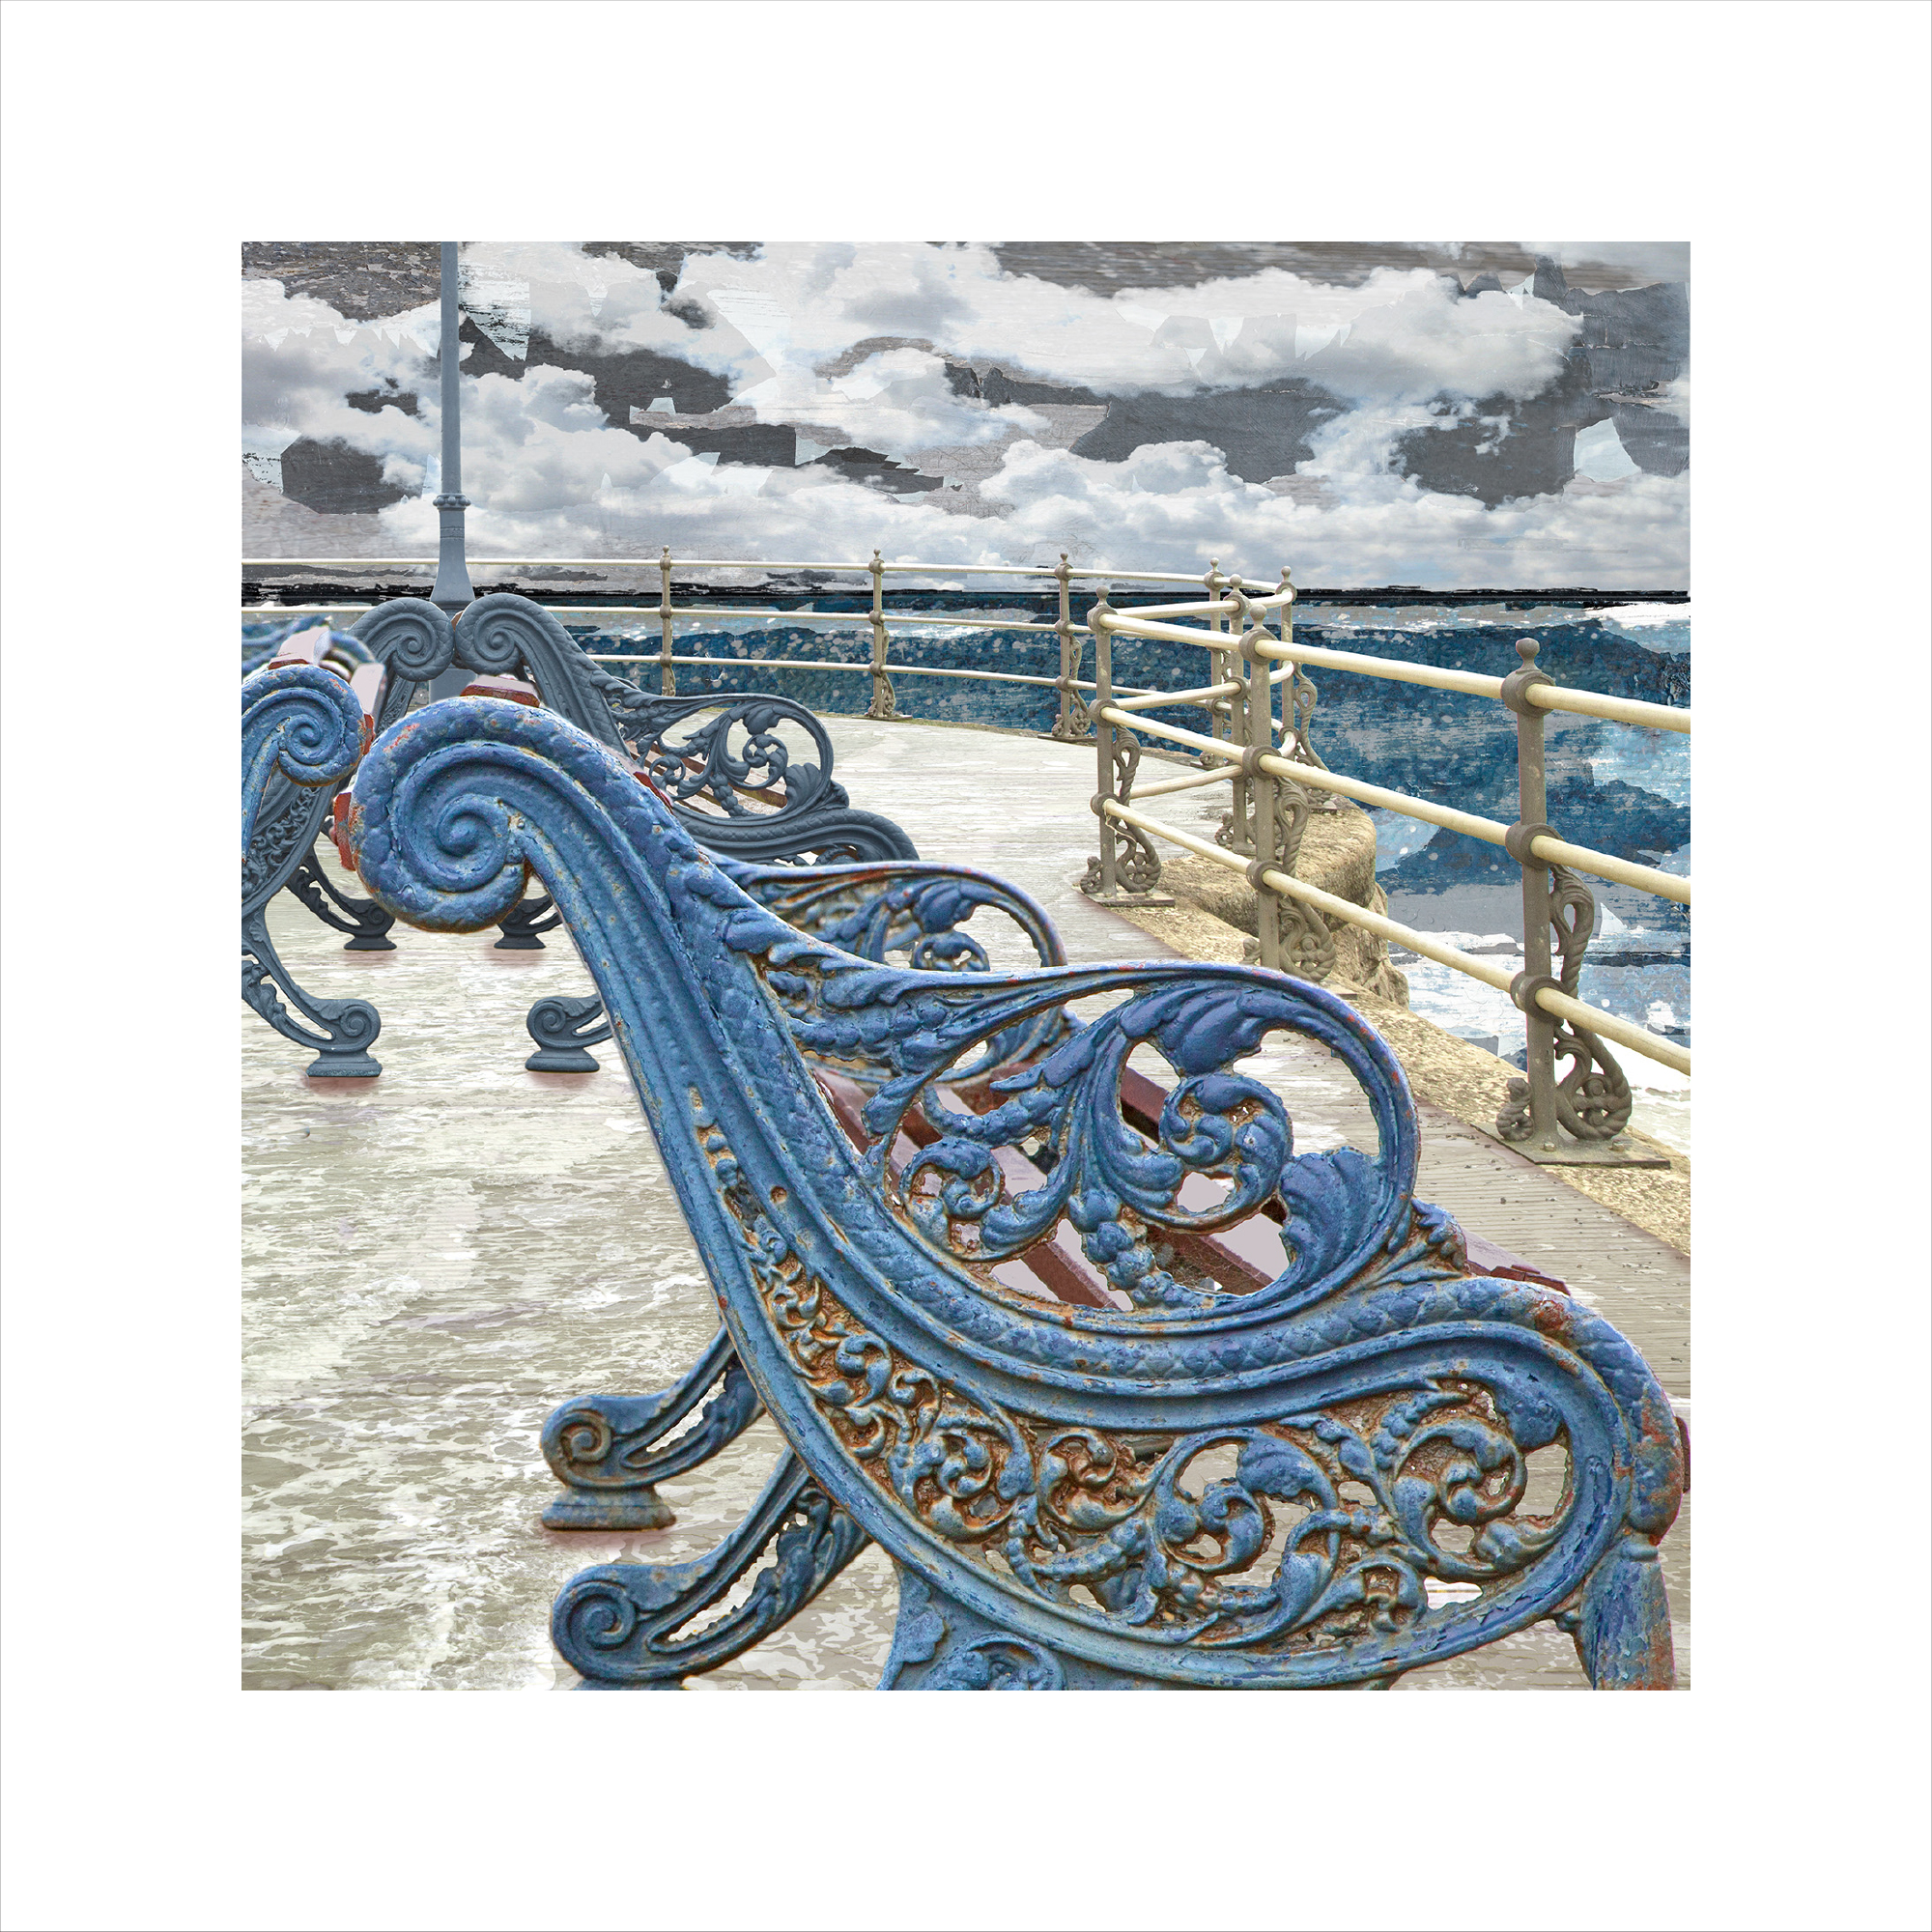 Claire Gill, Limited edition prints, digital photomontage, fine art prints, hahnemuhle, coastal art, Collect Art, seascape 48, Swanage